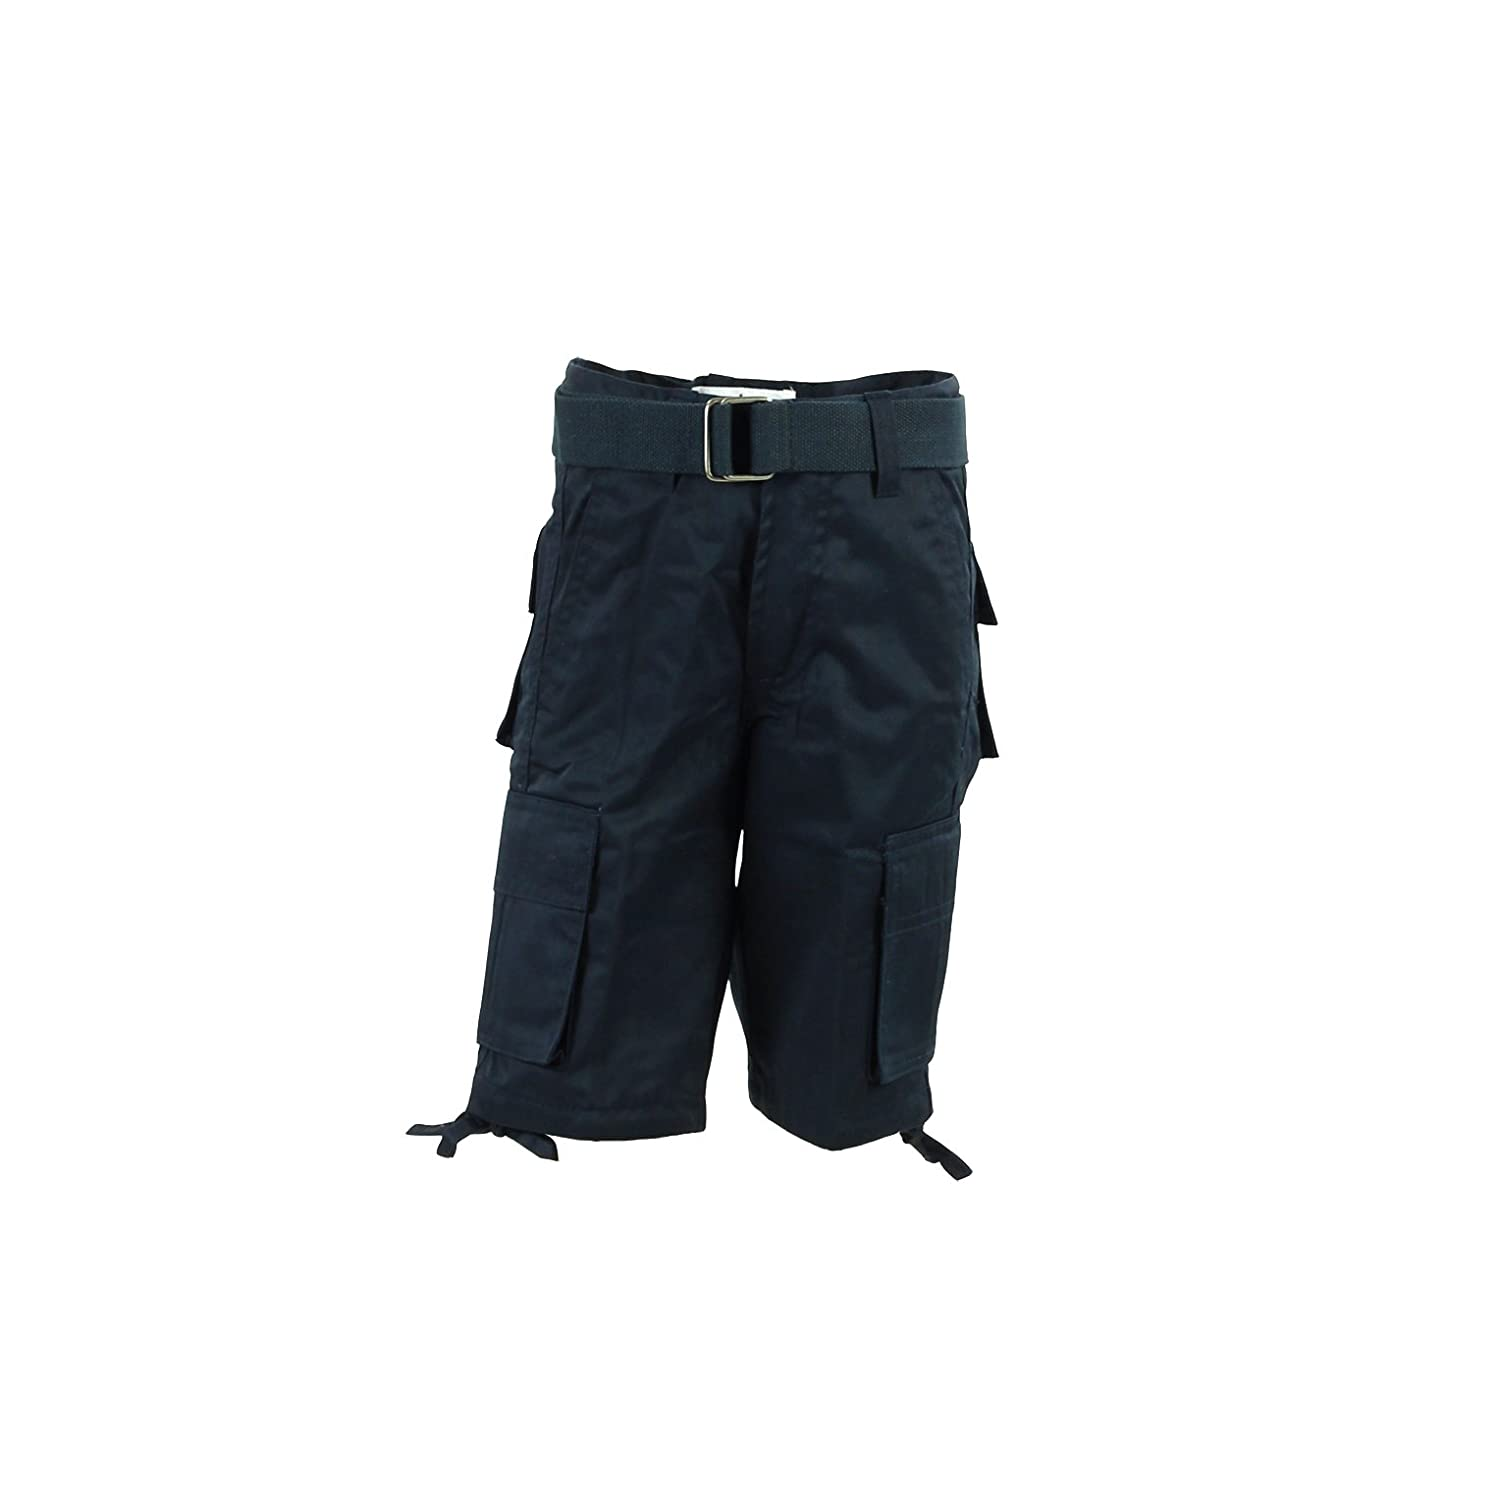 Access Boys Solid Color Cargo Shorts with Belt